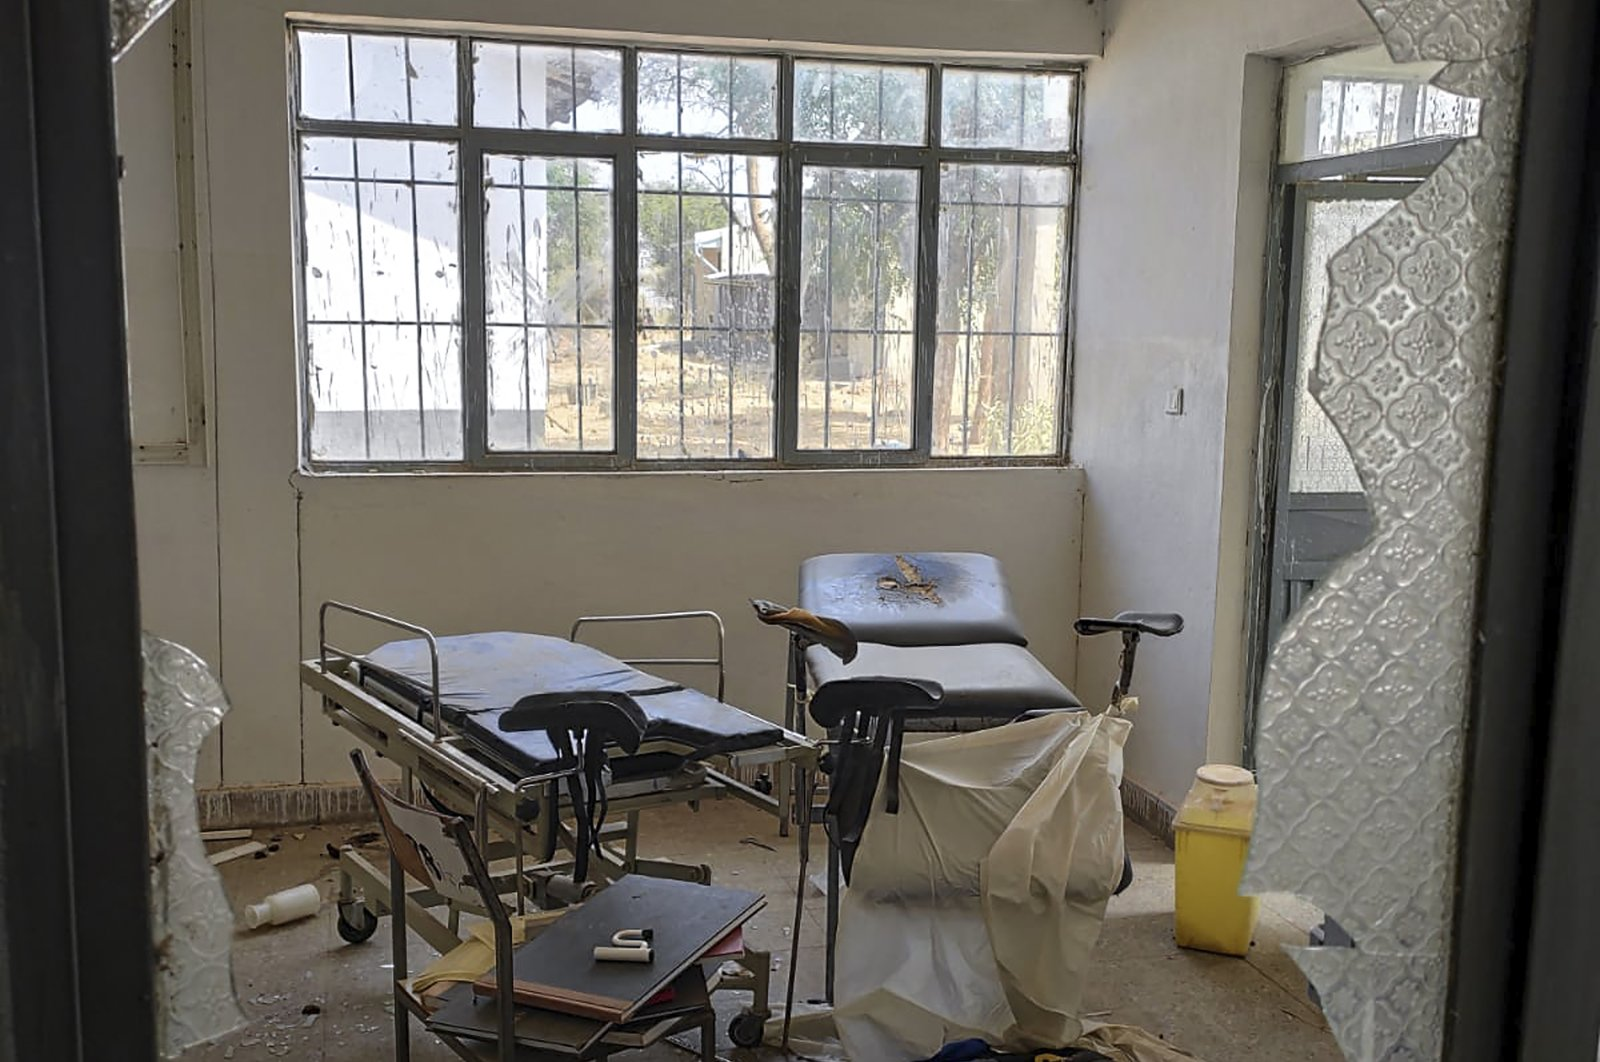 A damaged operating theater is seen through broken glass at a hospital in Sheraro, Tigray region of northern Ethiopia, March 15, 2021. (Medecins Sans Frontieres via AP)